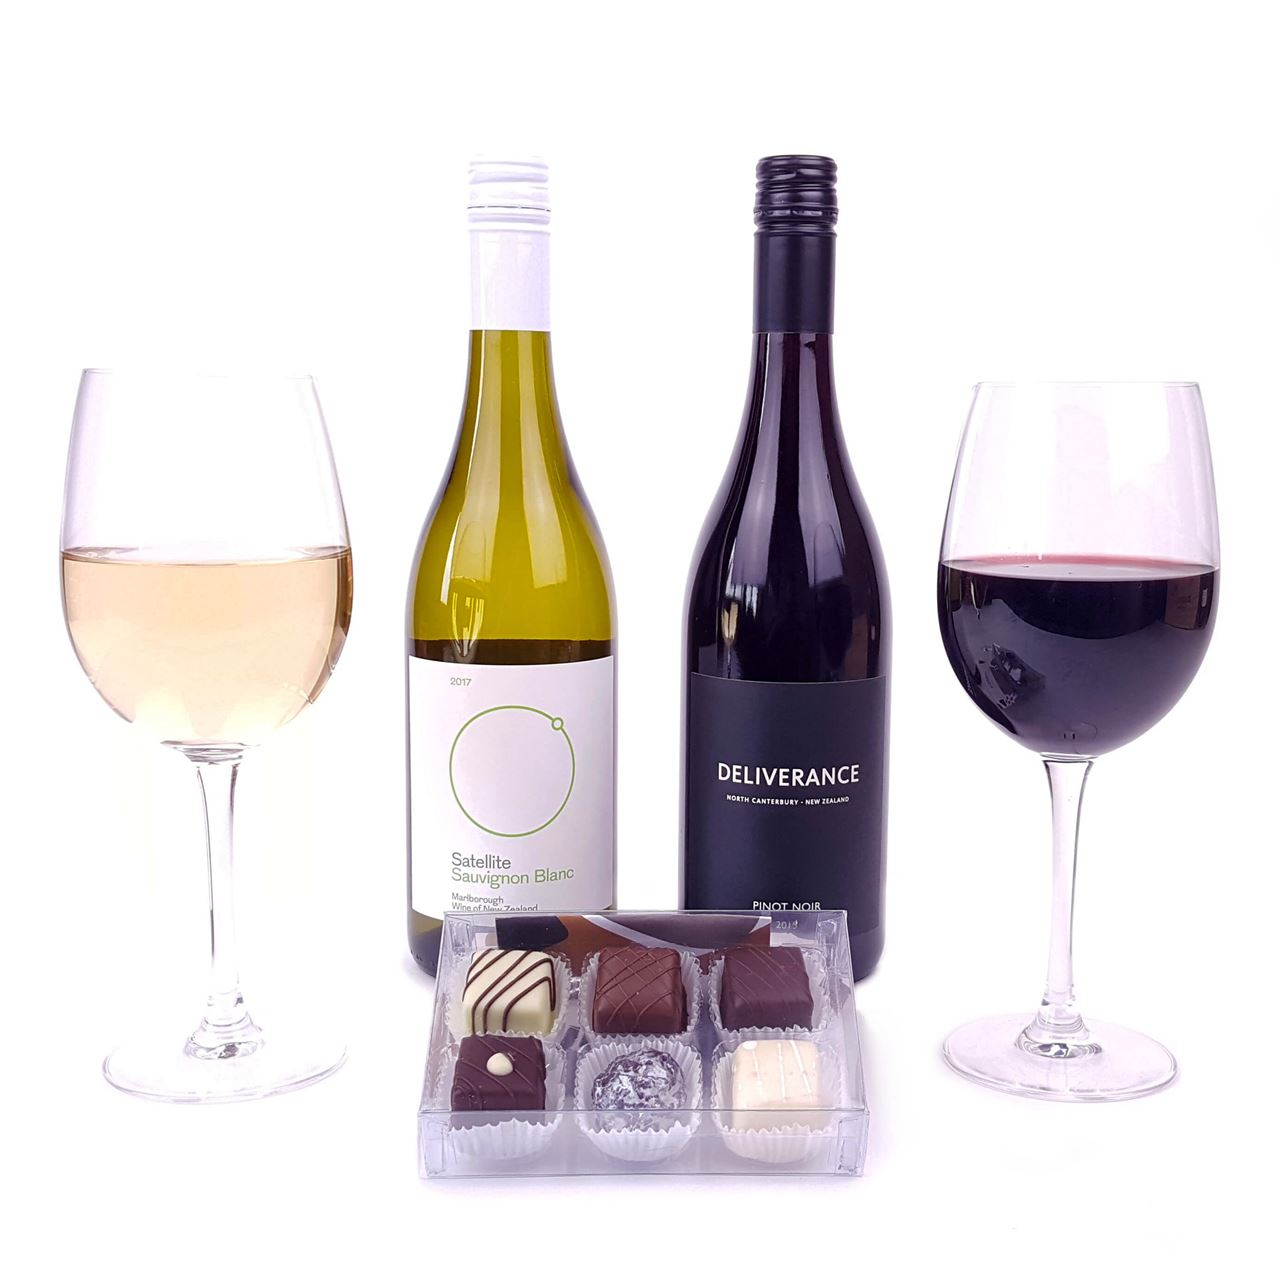 Nz wine and chocolates gift hamper for nz delivery free delivery picture of two new zealand wines and chocolates negle Gallery